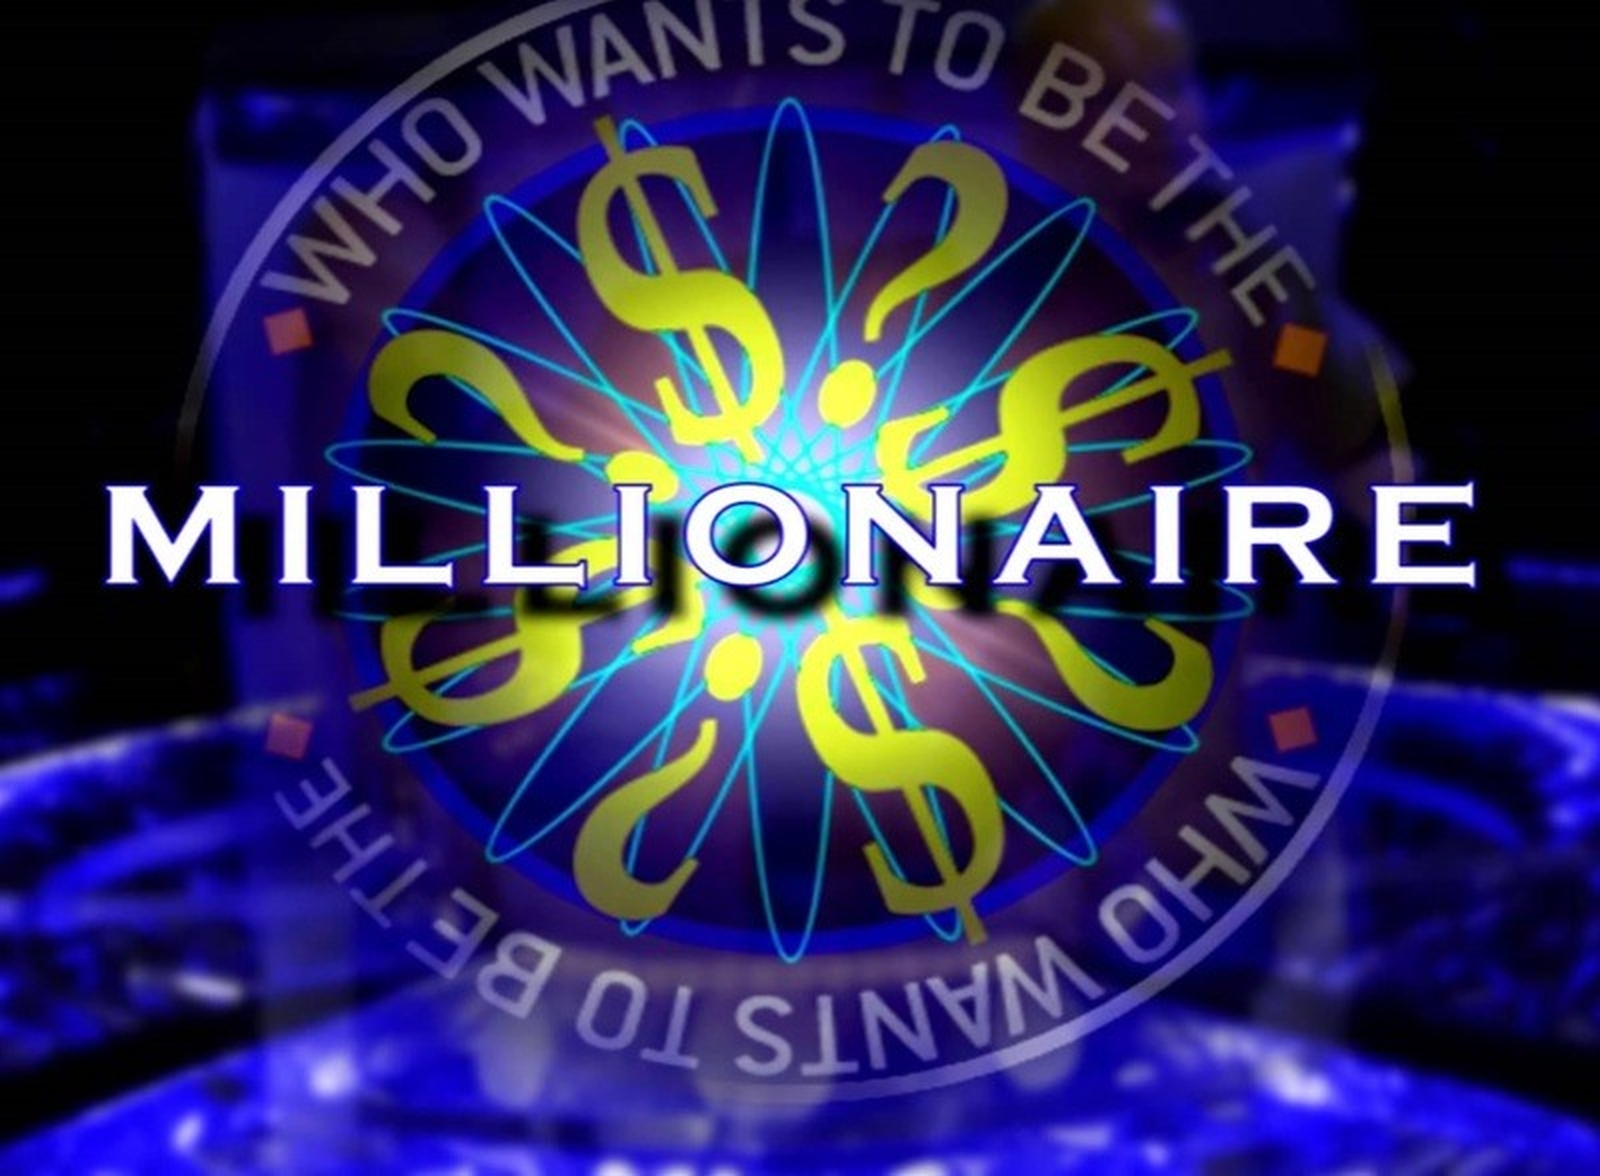 The Who Wants to Be a Millionaire (Ash Gaming) Online Slot Demo Game by Ash Gaming